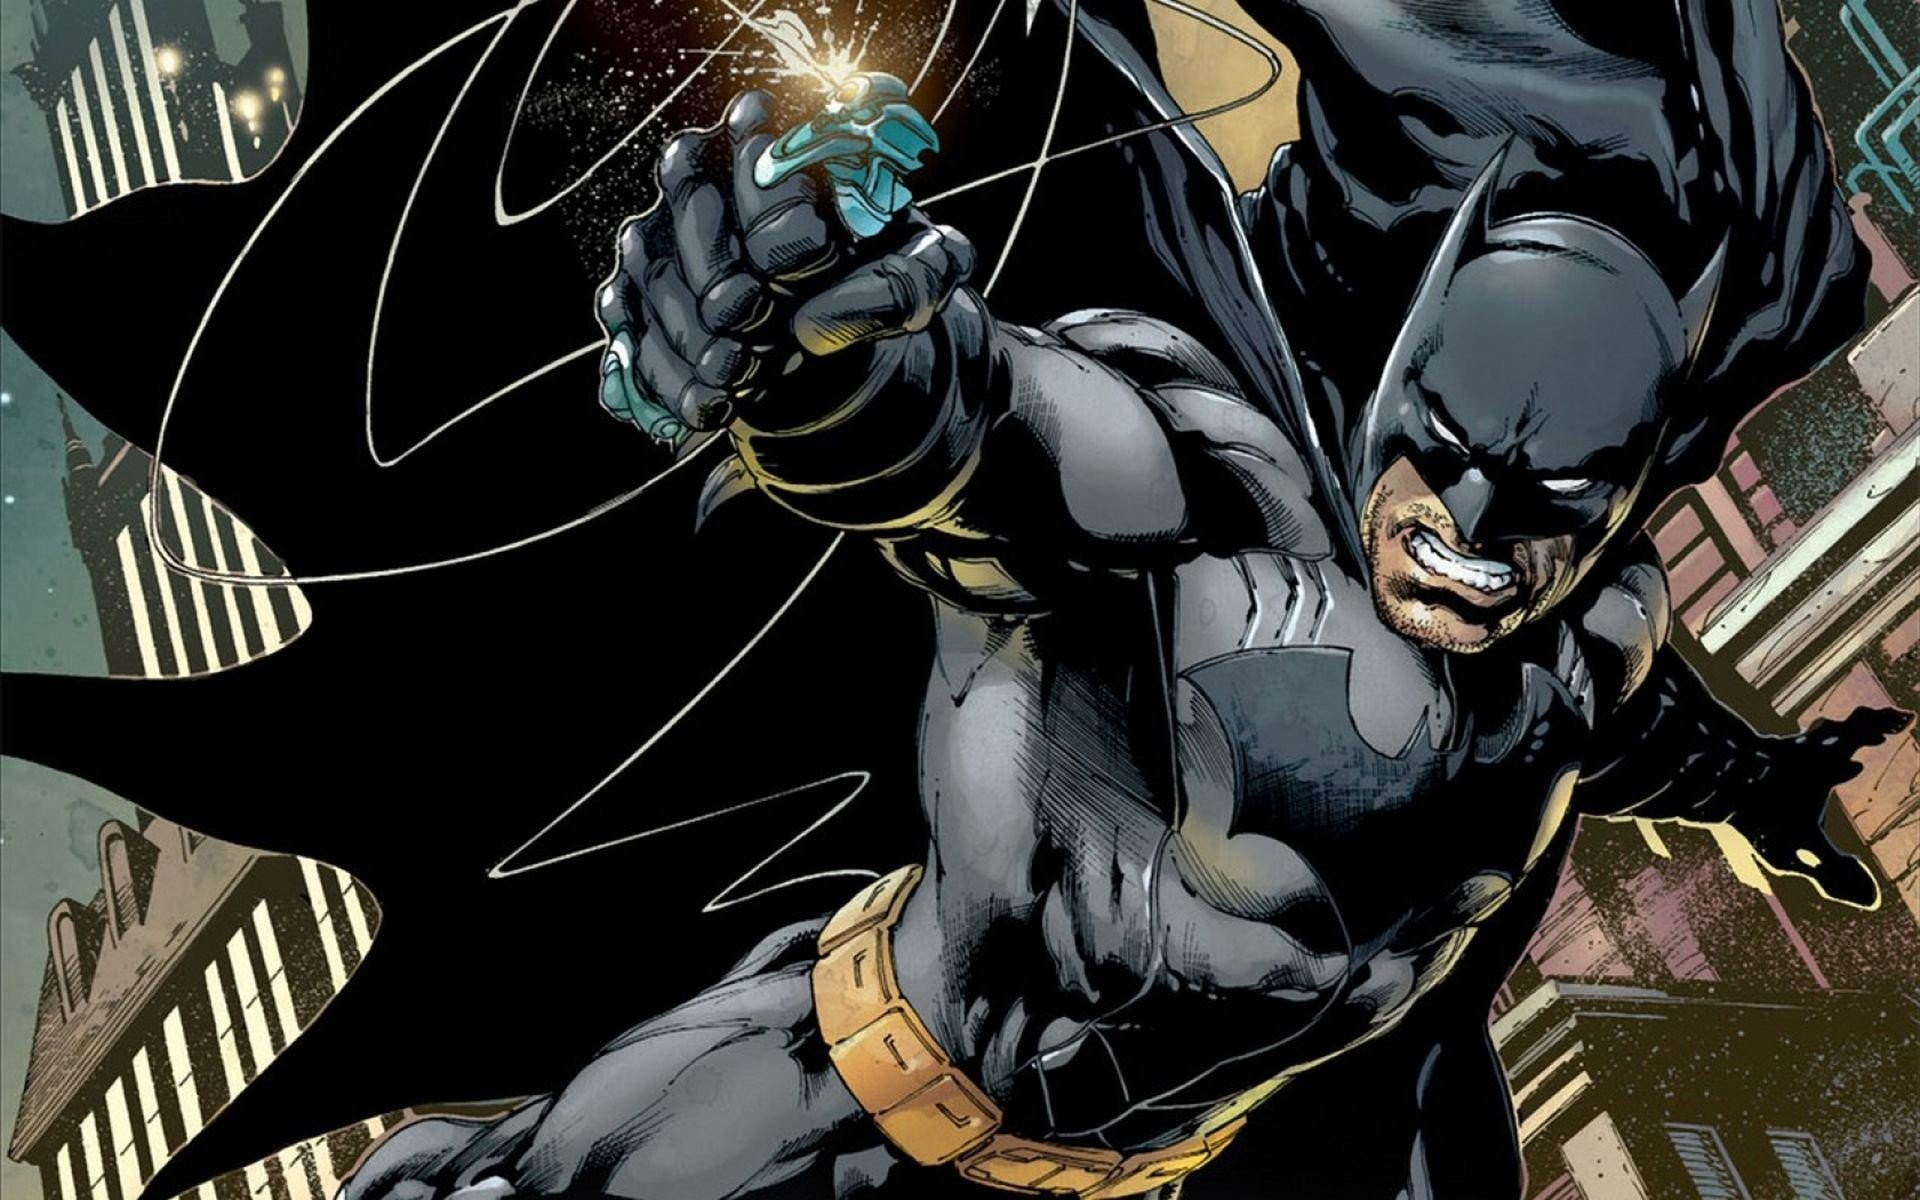 1920x1200 Widescreen Wallpapers of Batman Hush, Top Pic Jim Lee Wallpaper Art -  WallpaperSafari